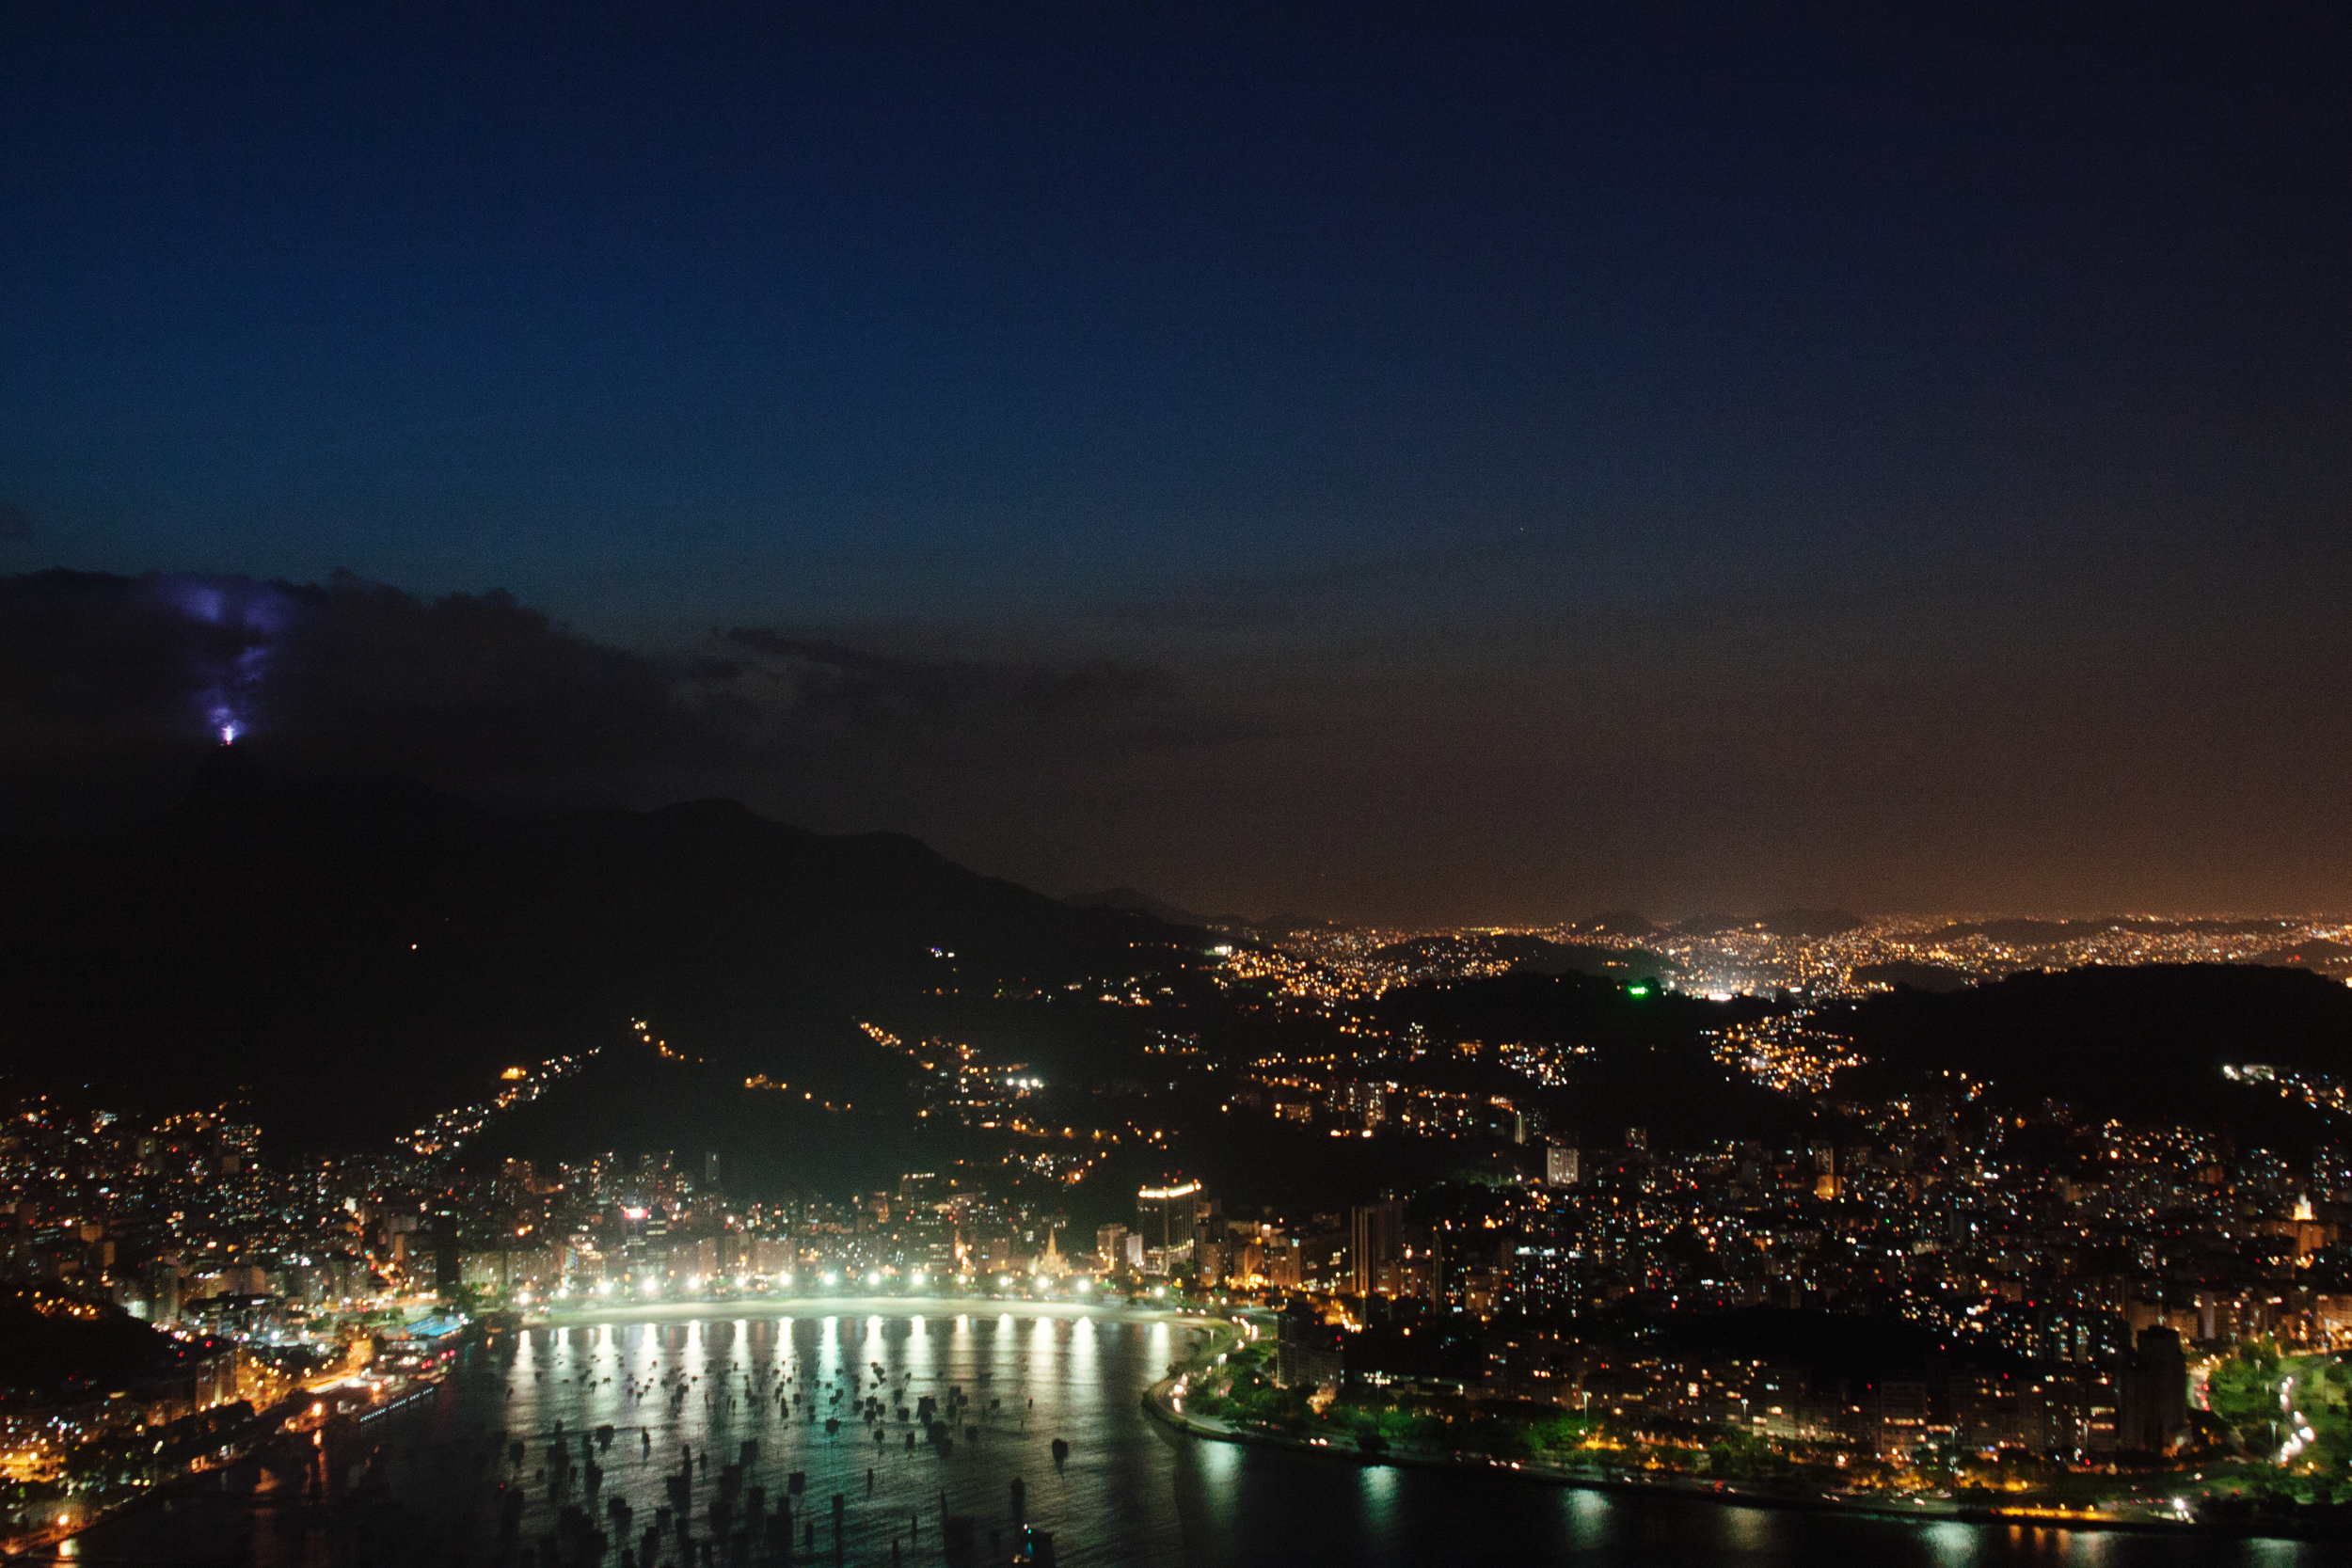 Brazil, Rio de Janeiro, Landscape, Travel photography, architecture, street photography, Sugarloaf Mountain